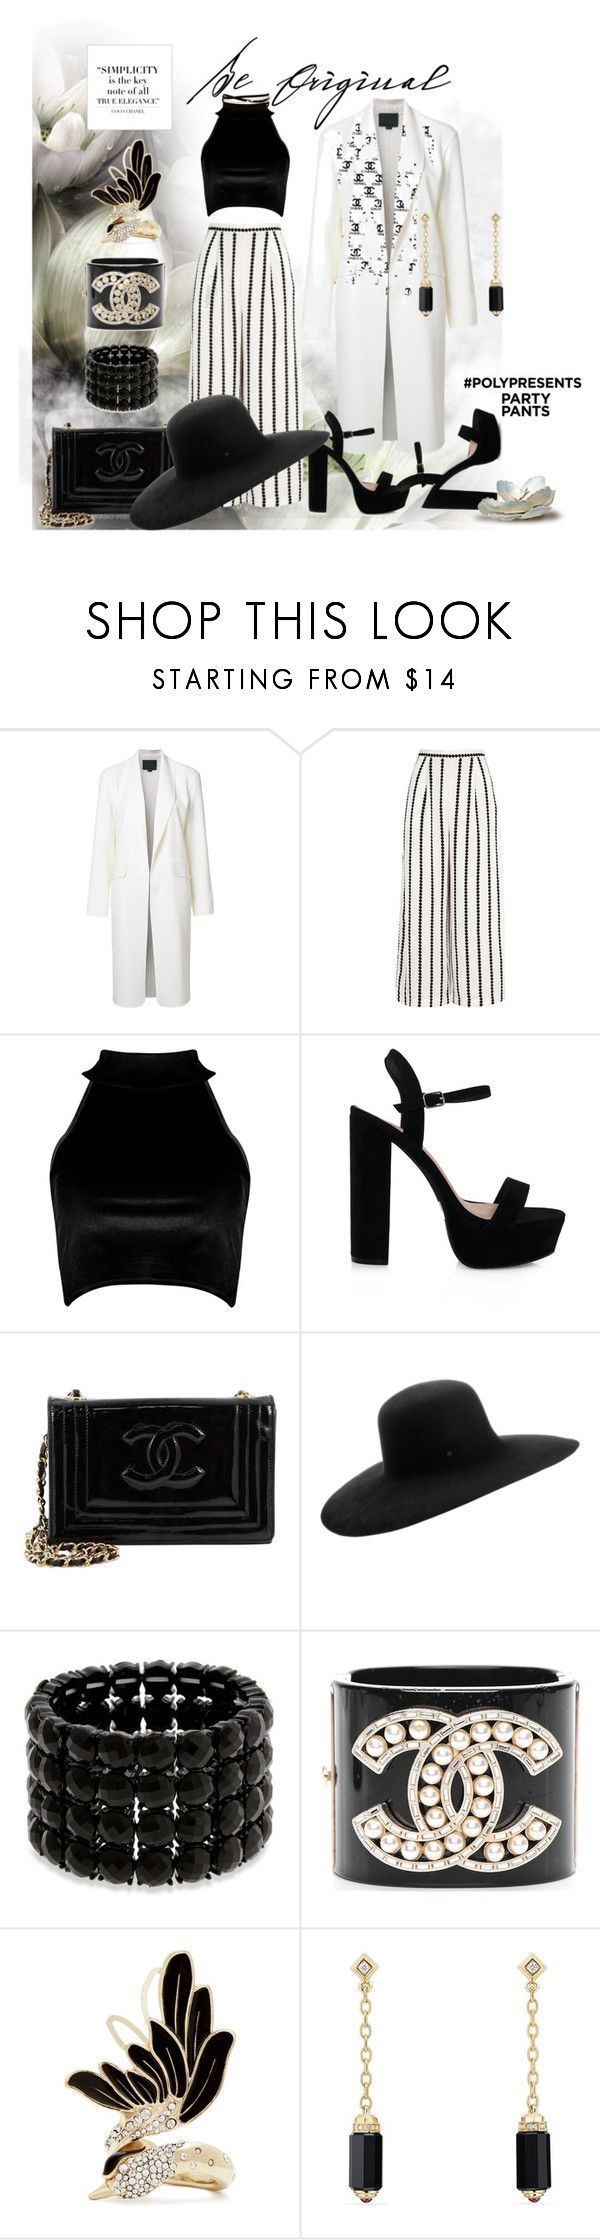 """""""#PolyPresents: Fancy Pants"""" by irene-sousa2 ❤ liked on Polyvore featuring Alexander Wang, Finders Keepers, Boohoo, Chanel, Maison Michel, Erica Lyons, Lanvin, David Yurman, Kenneth Jay Lane and contestentry"""